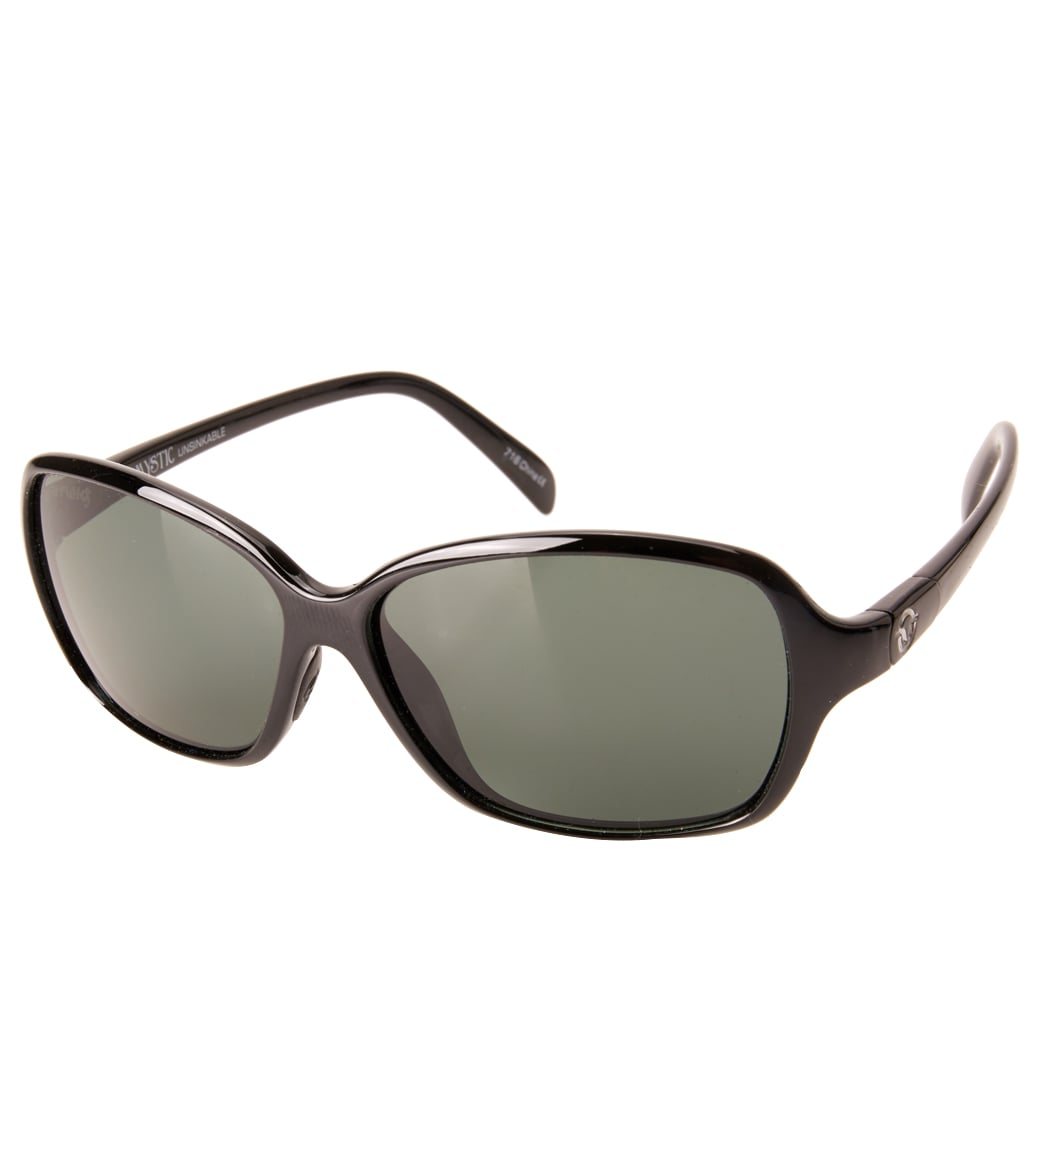 7601888cee5 Unsinkable Polarized Mystic Unsinkable Polarized Floating Sunglasses at  SwimOutlet.com - Free Shipping